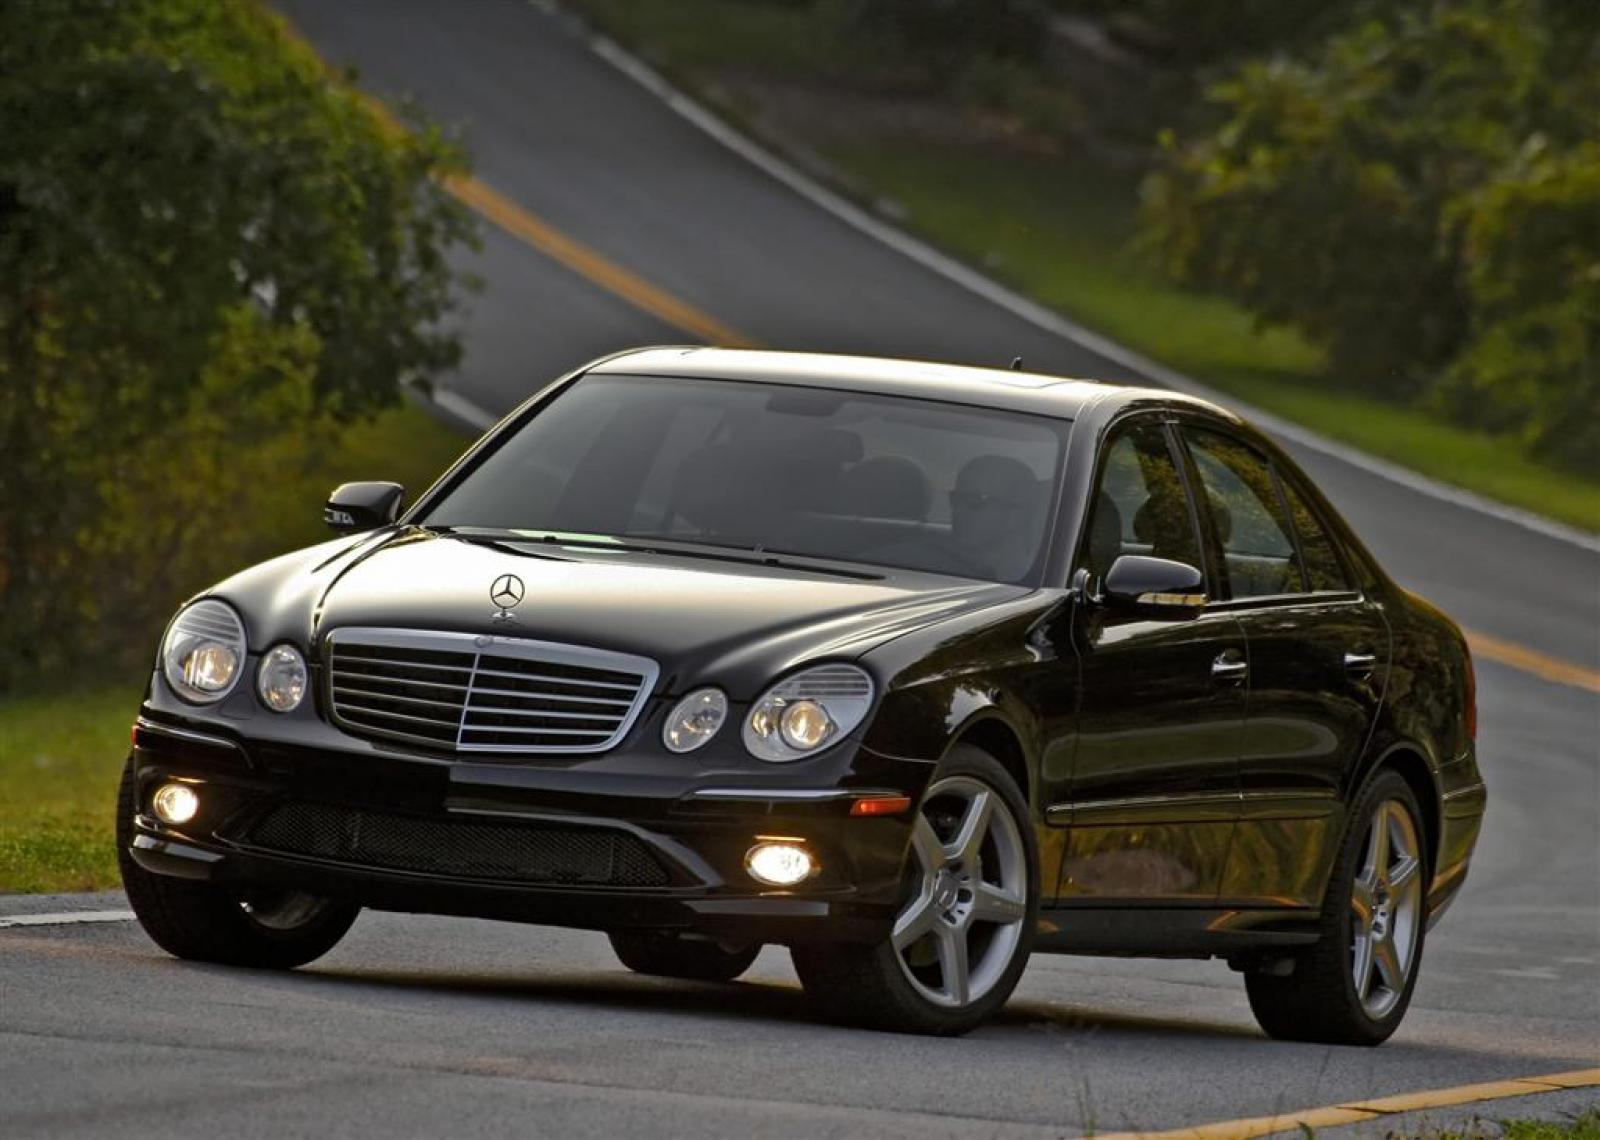 2001 mercedes benz e class information and photos for Facts about mercedes benz